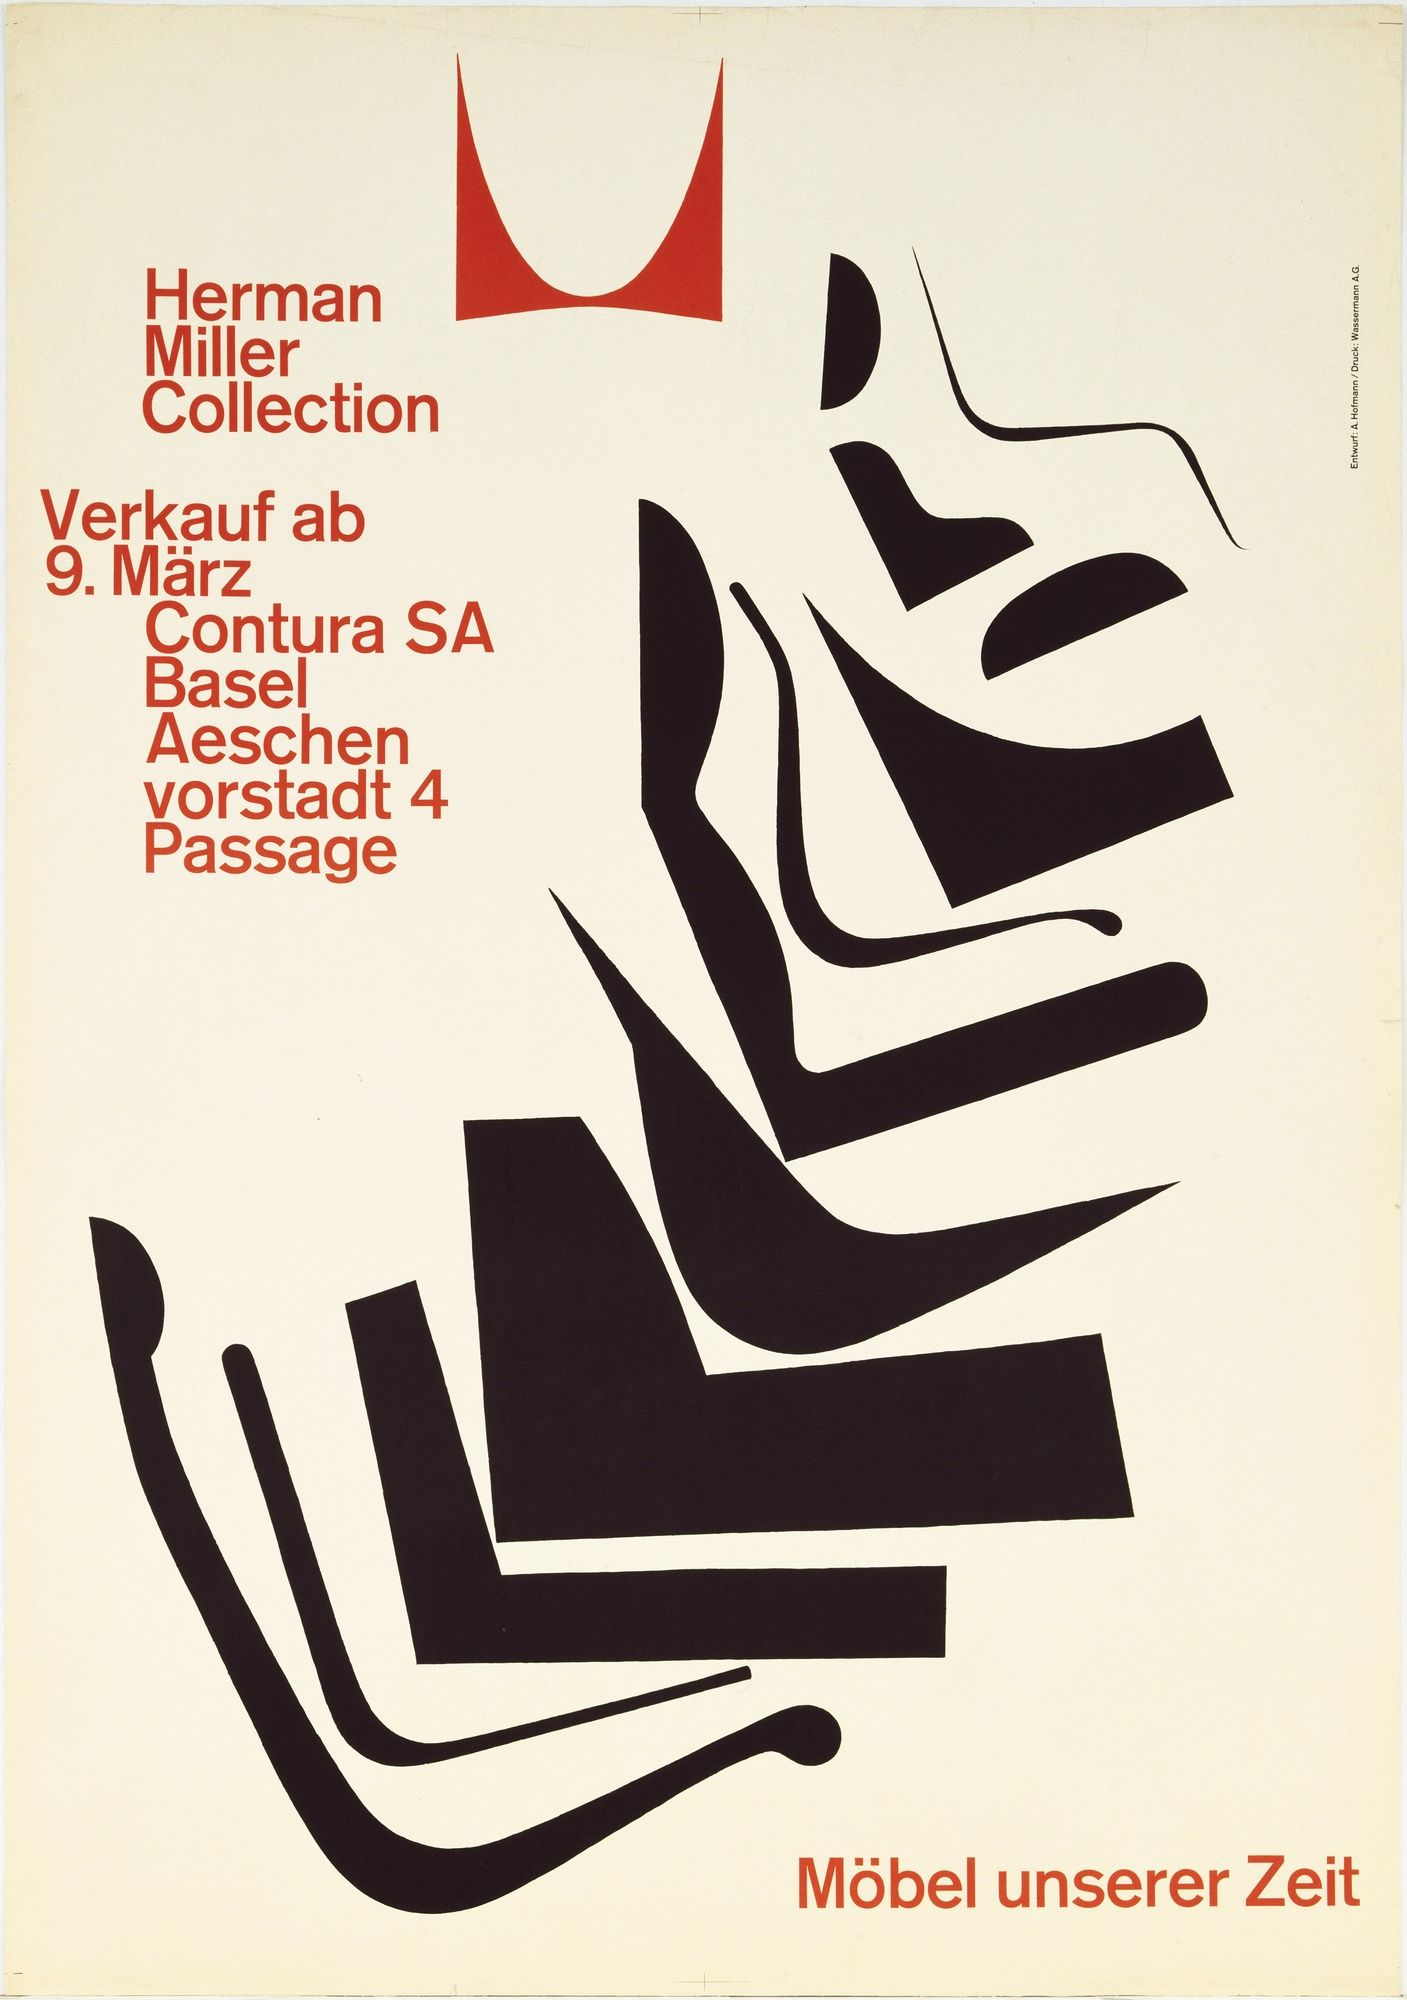 Herman Miller Collection, Möbel Unserer Zeit. 1962. Lithographu2026